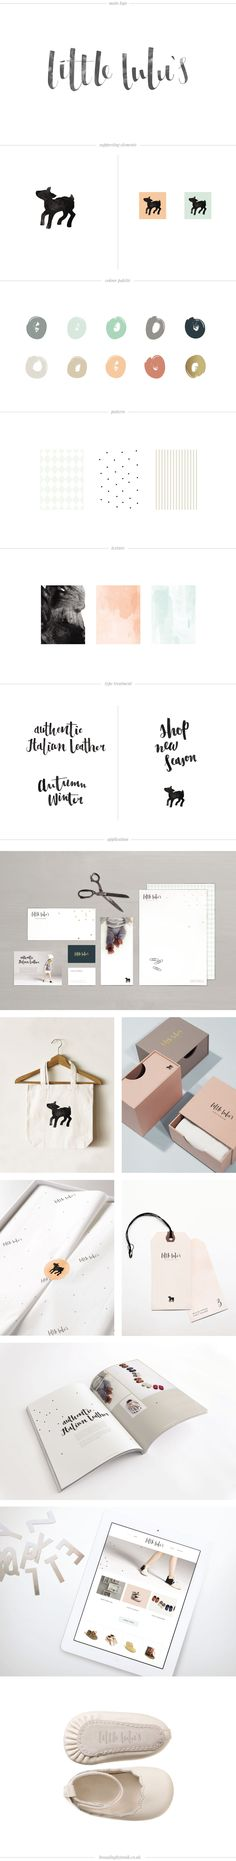 logo design and branding for italian leather baby shoes company little lulu's in sheffield